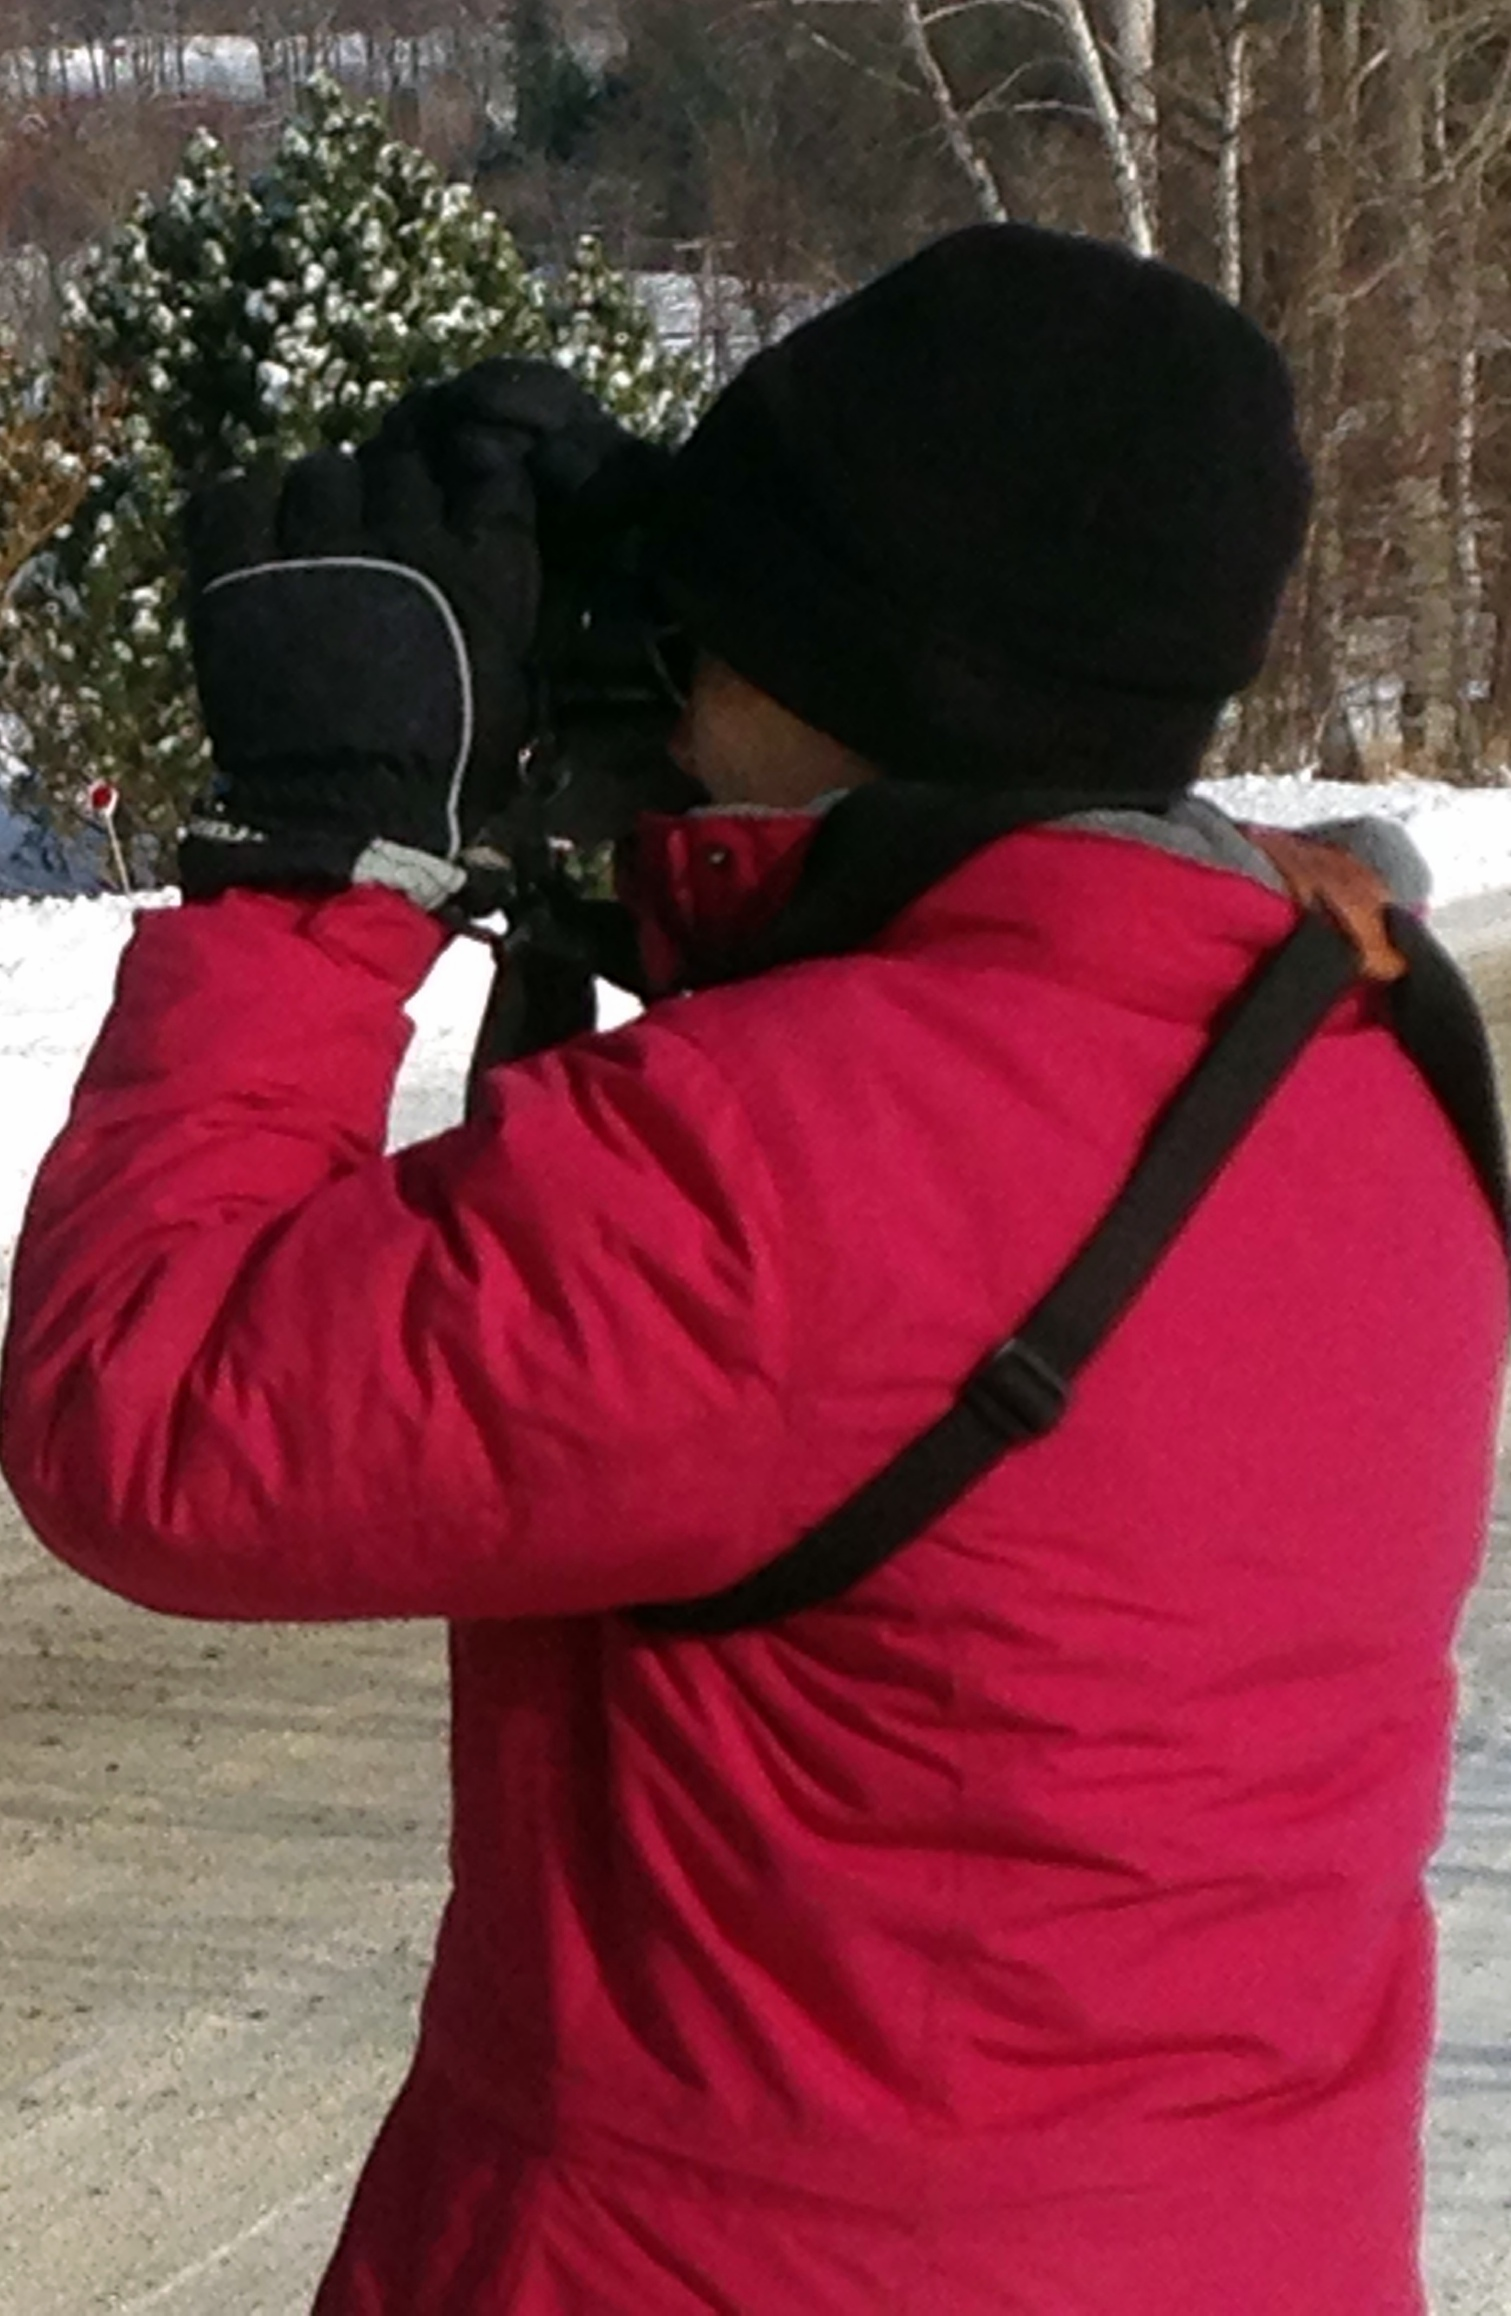 Pat Folsom, of Waitsfield, VT, searches for birds during the Christmas Bird Count